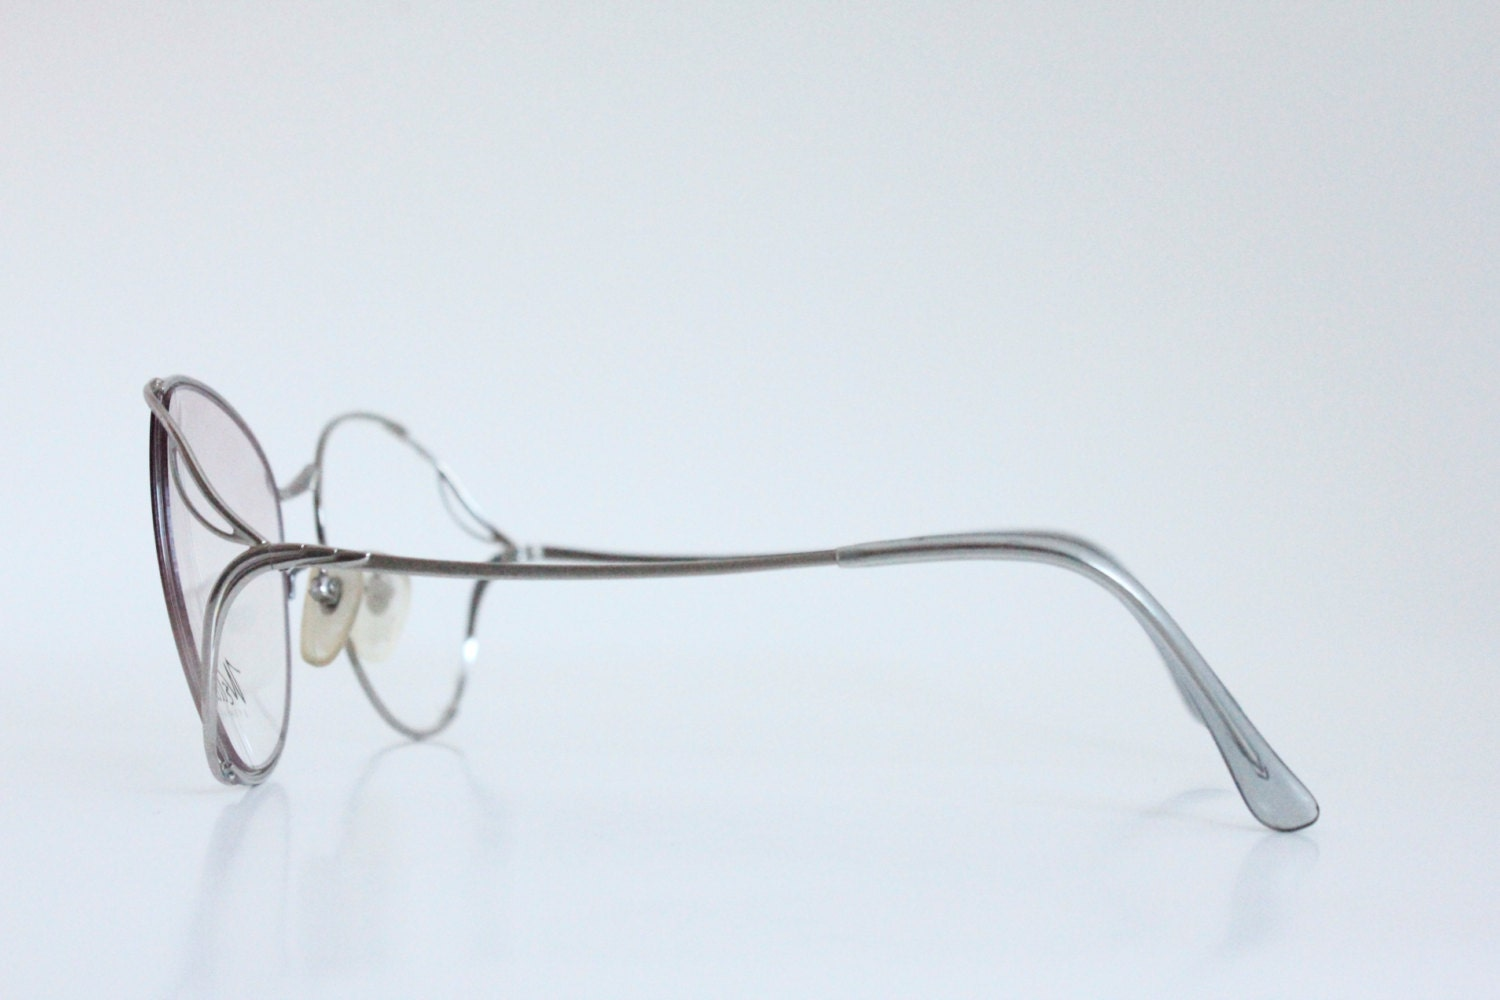 vintage 80s silver drop arm wire eyeglasses frames - Wire Eyeglass Frames